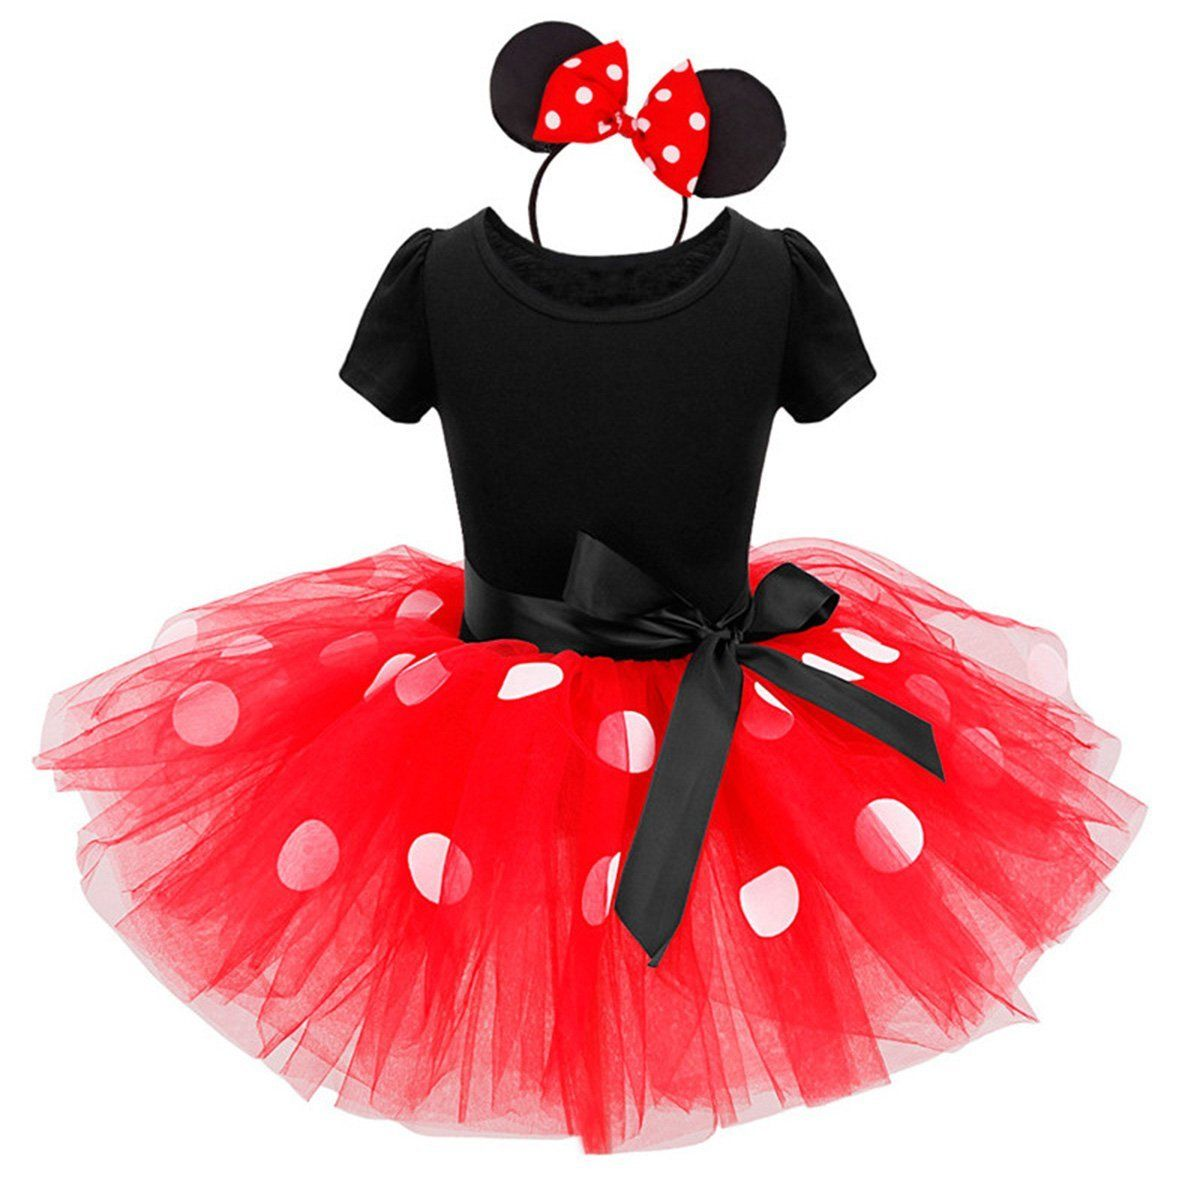 2PCS Kids Baby Girls Minnie style Princess Rabbit Ear Headwear Party Costume Cosplay 2Y-8Y Kid Girls Polka Dots Mesh Tutu Dress